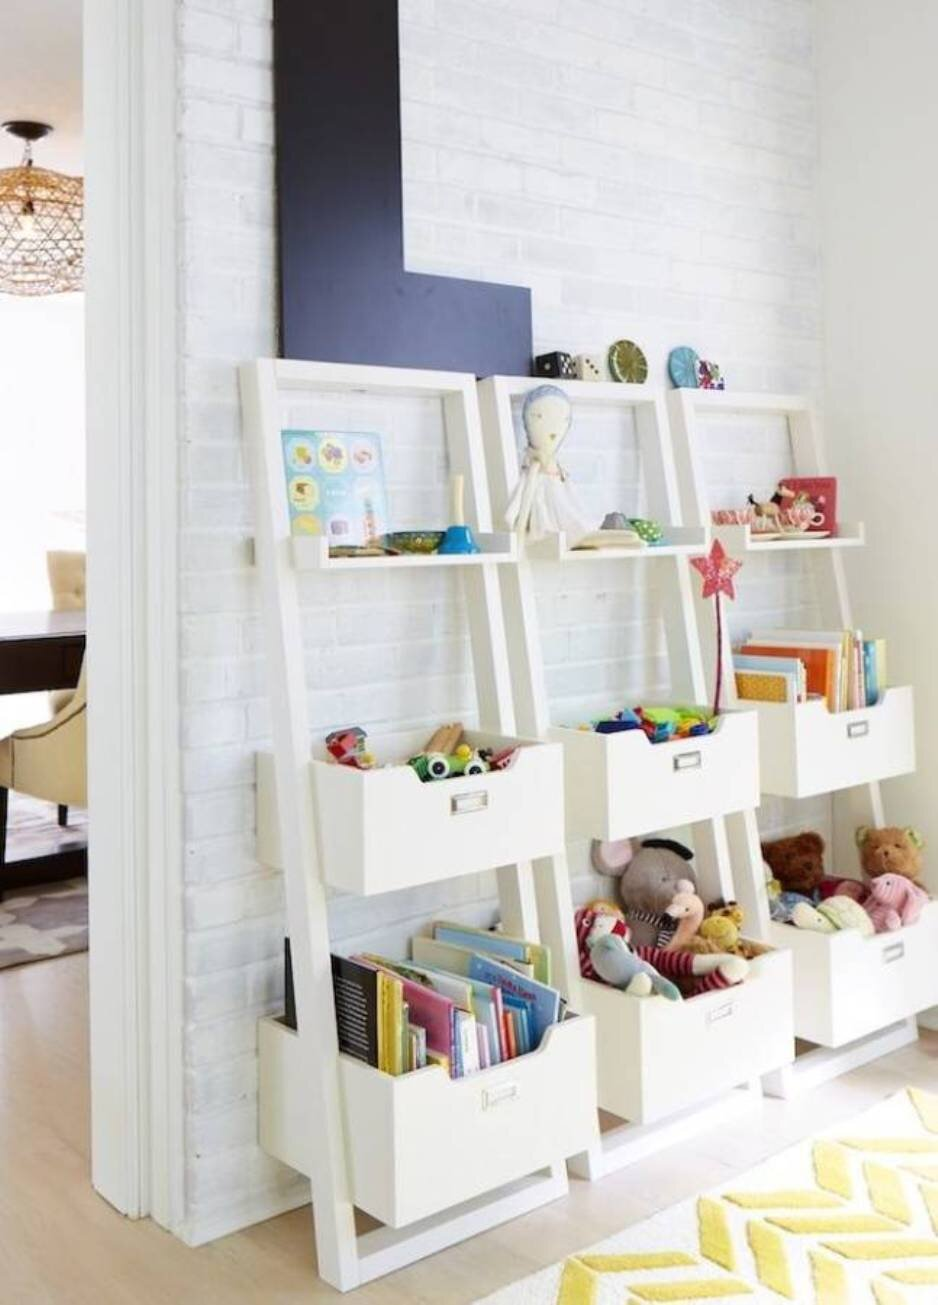 We love this idea! Not only does it give each toy a home but it's also a place to display toys to encourage playtime over screen time! Via:  Home BNC